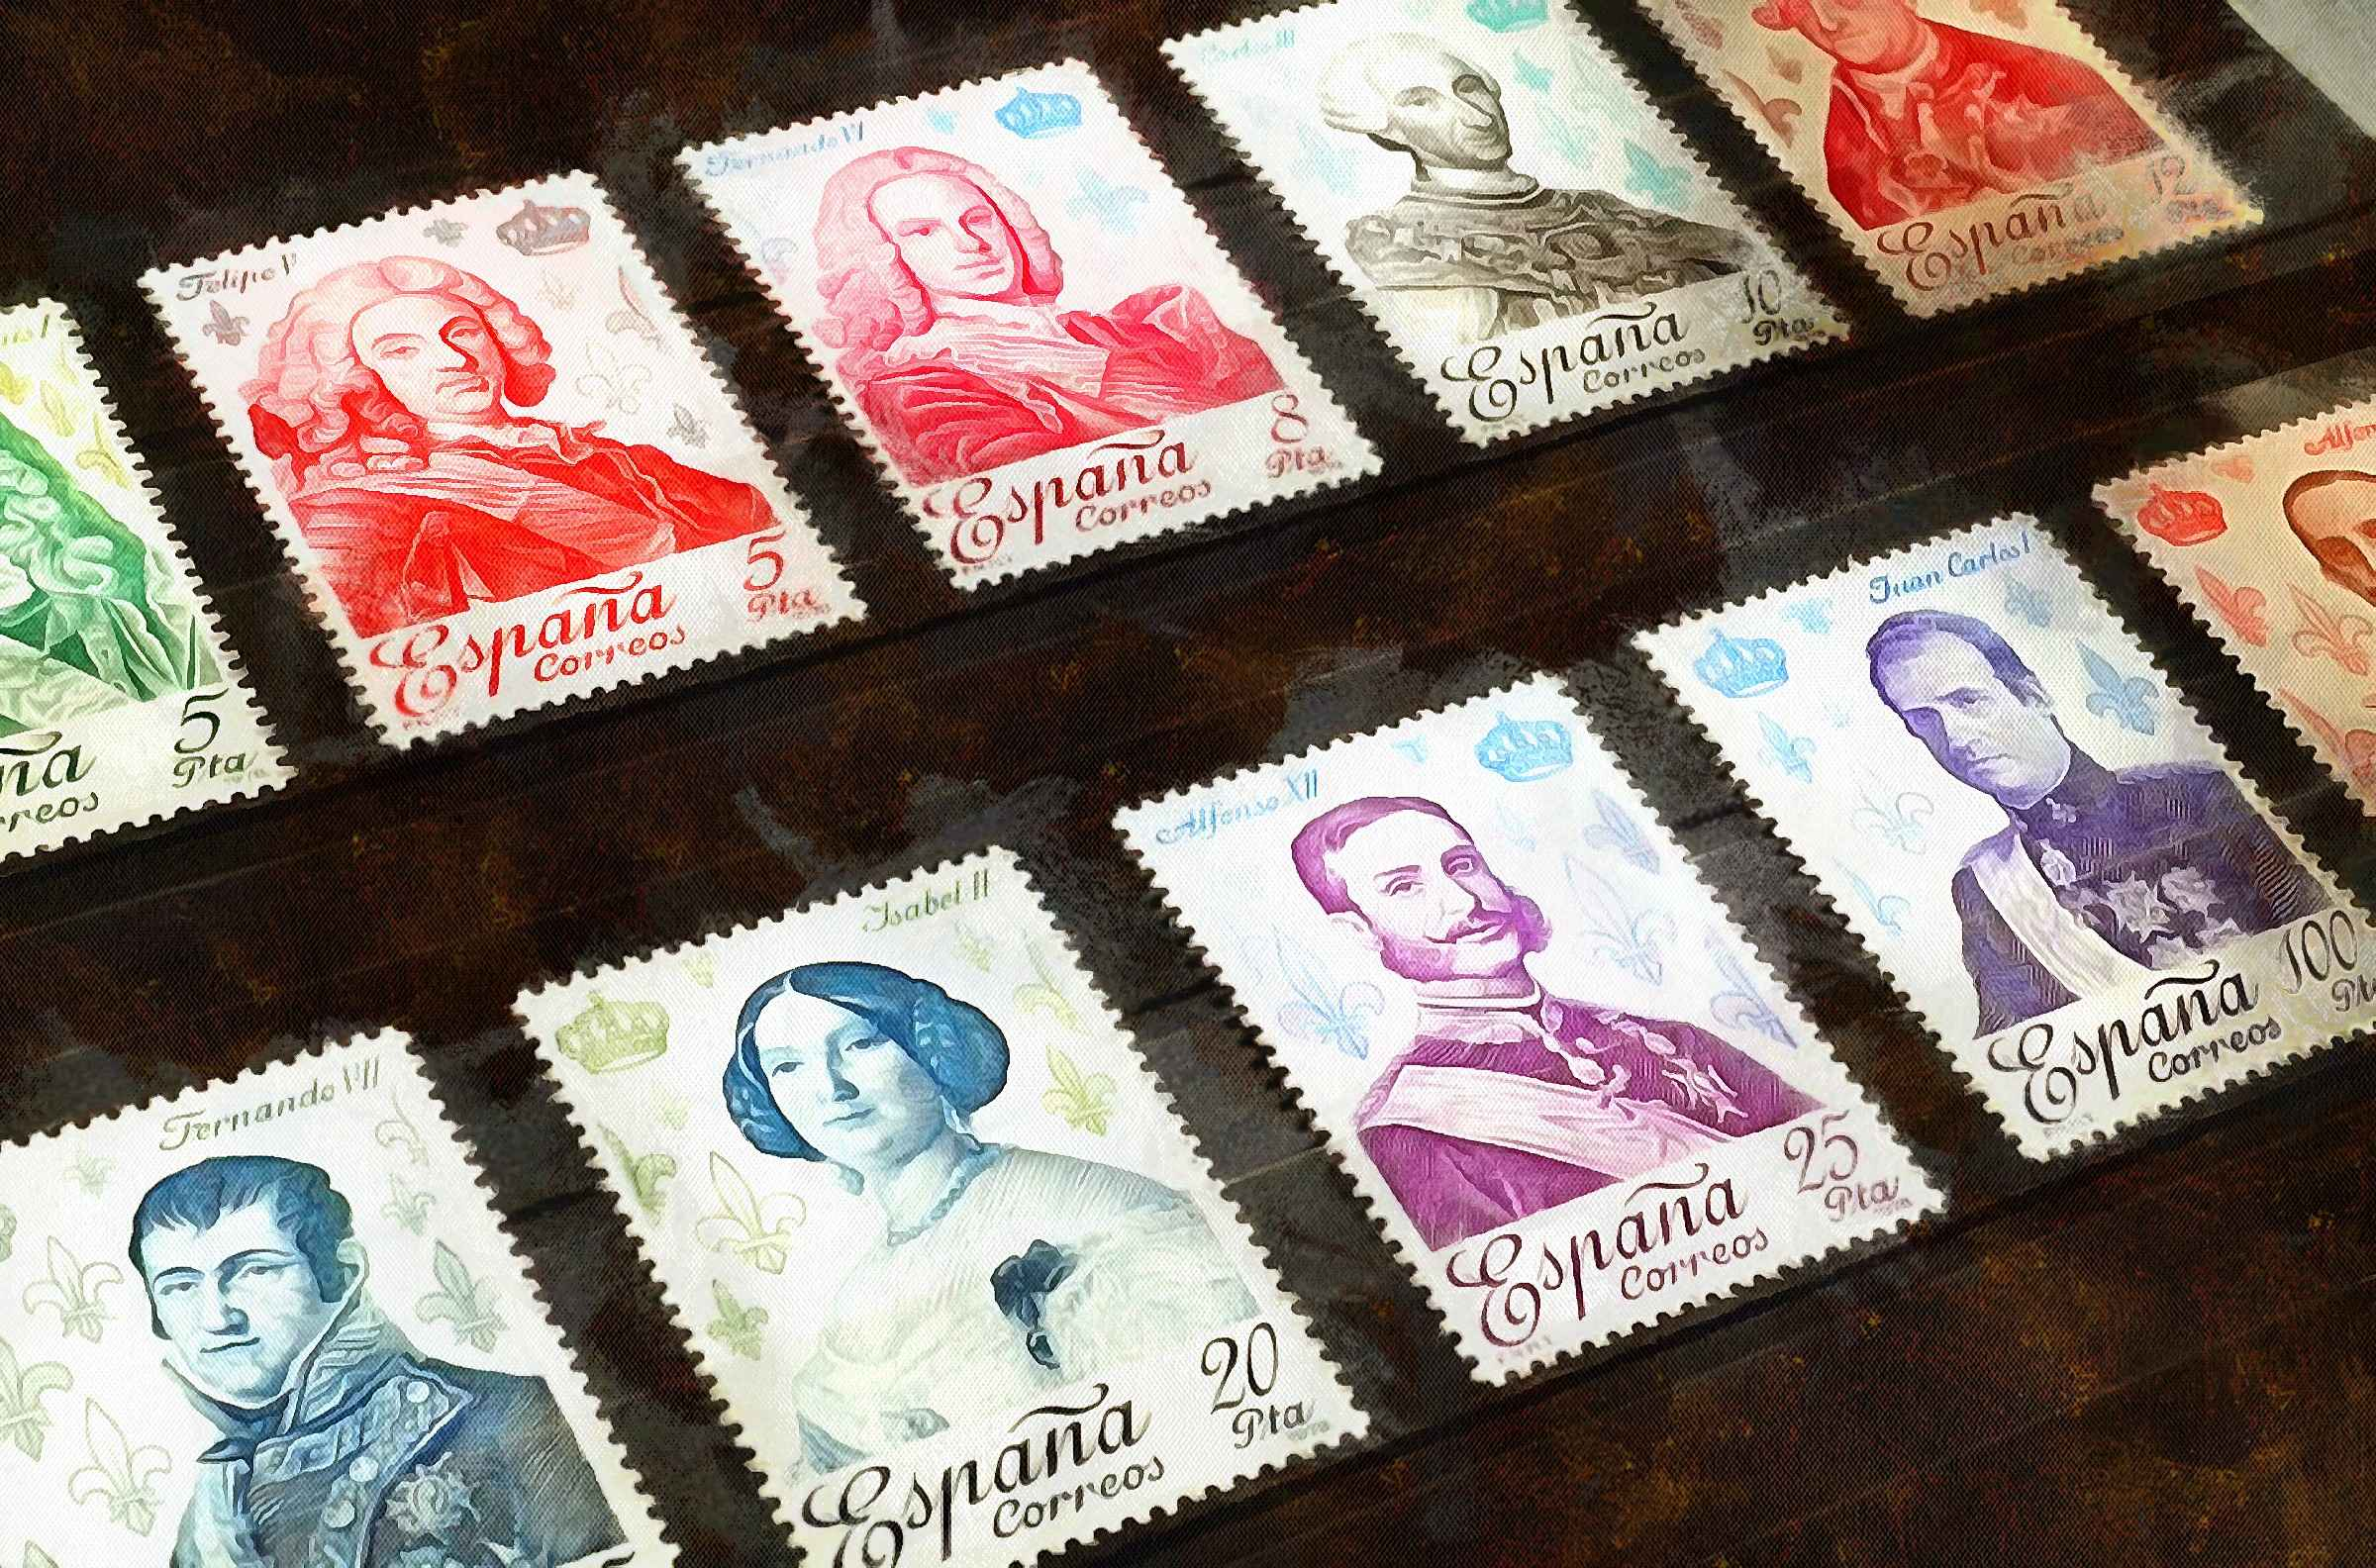 Most Expensive Stamps – Interesting facts about postal stamps